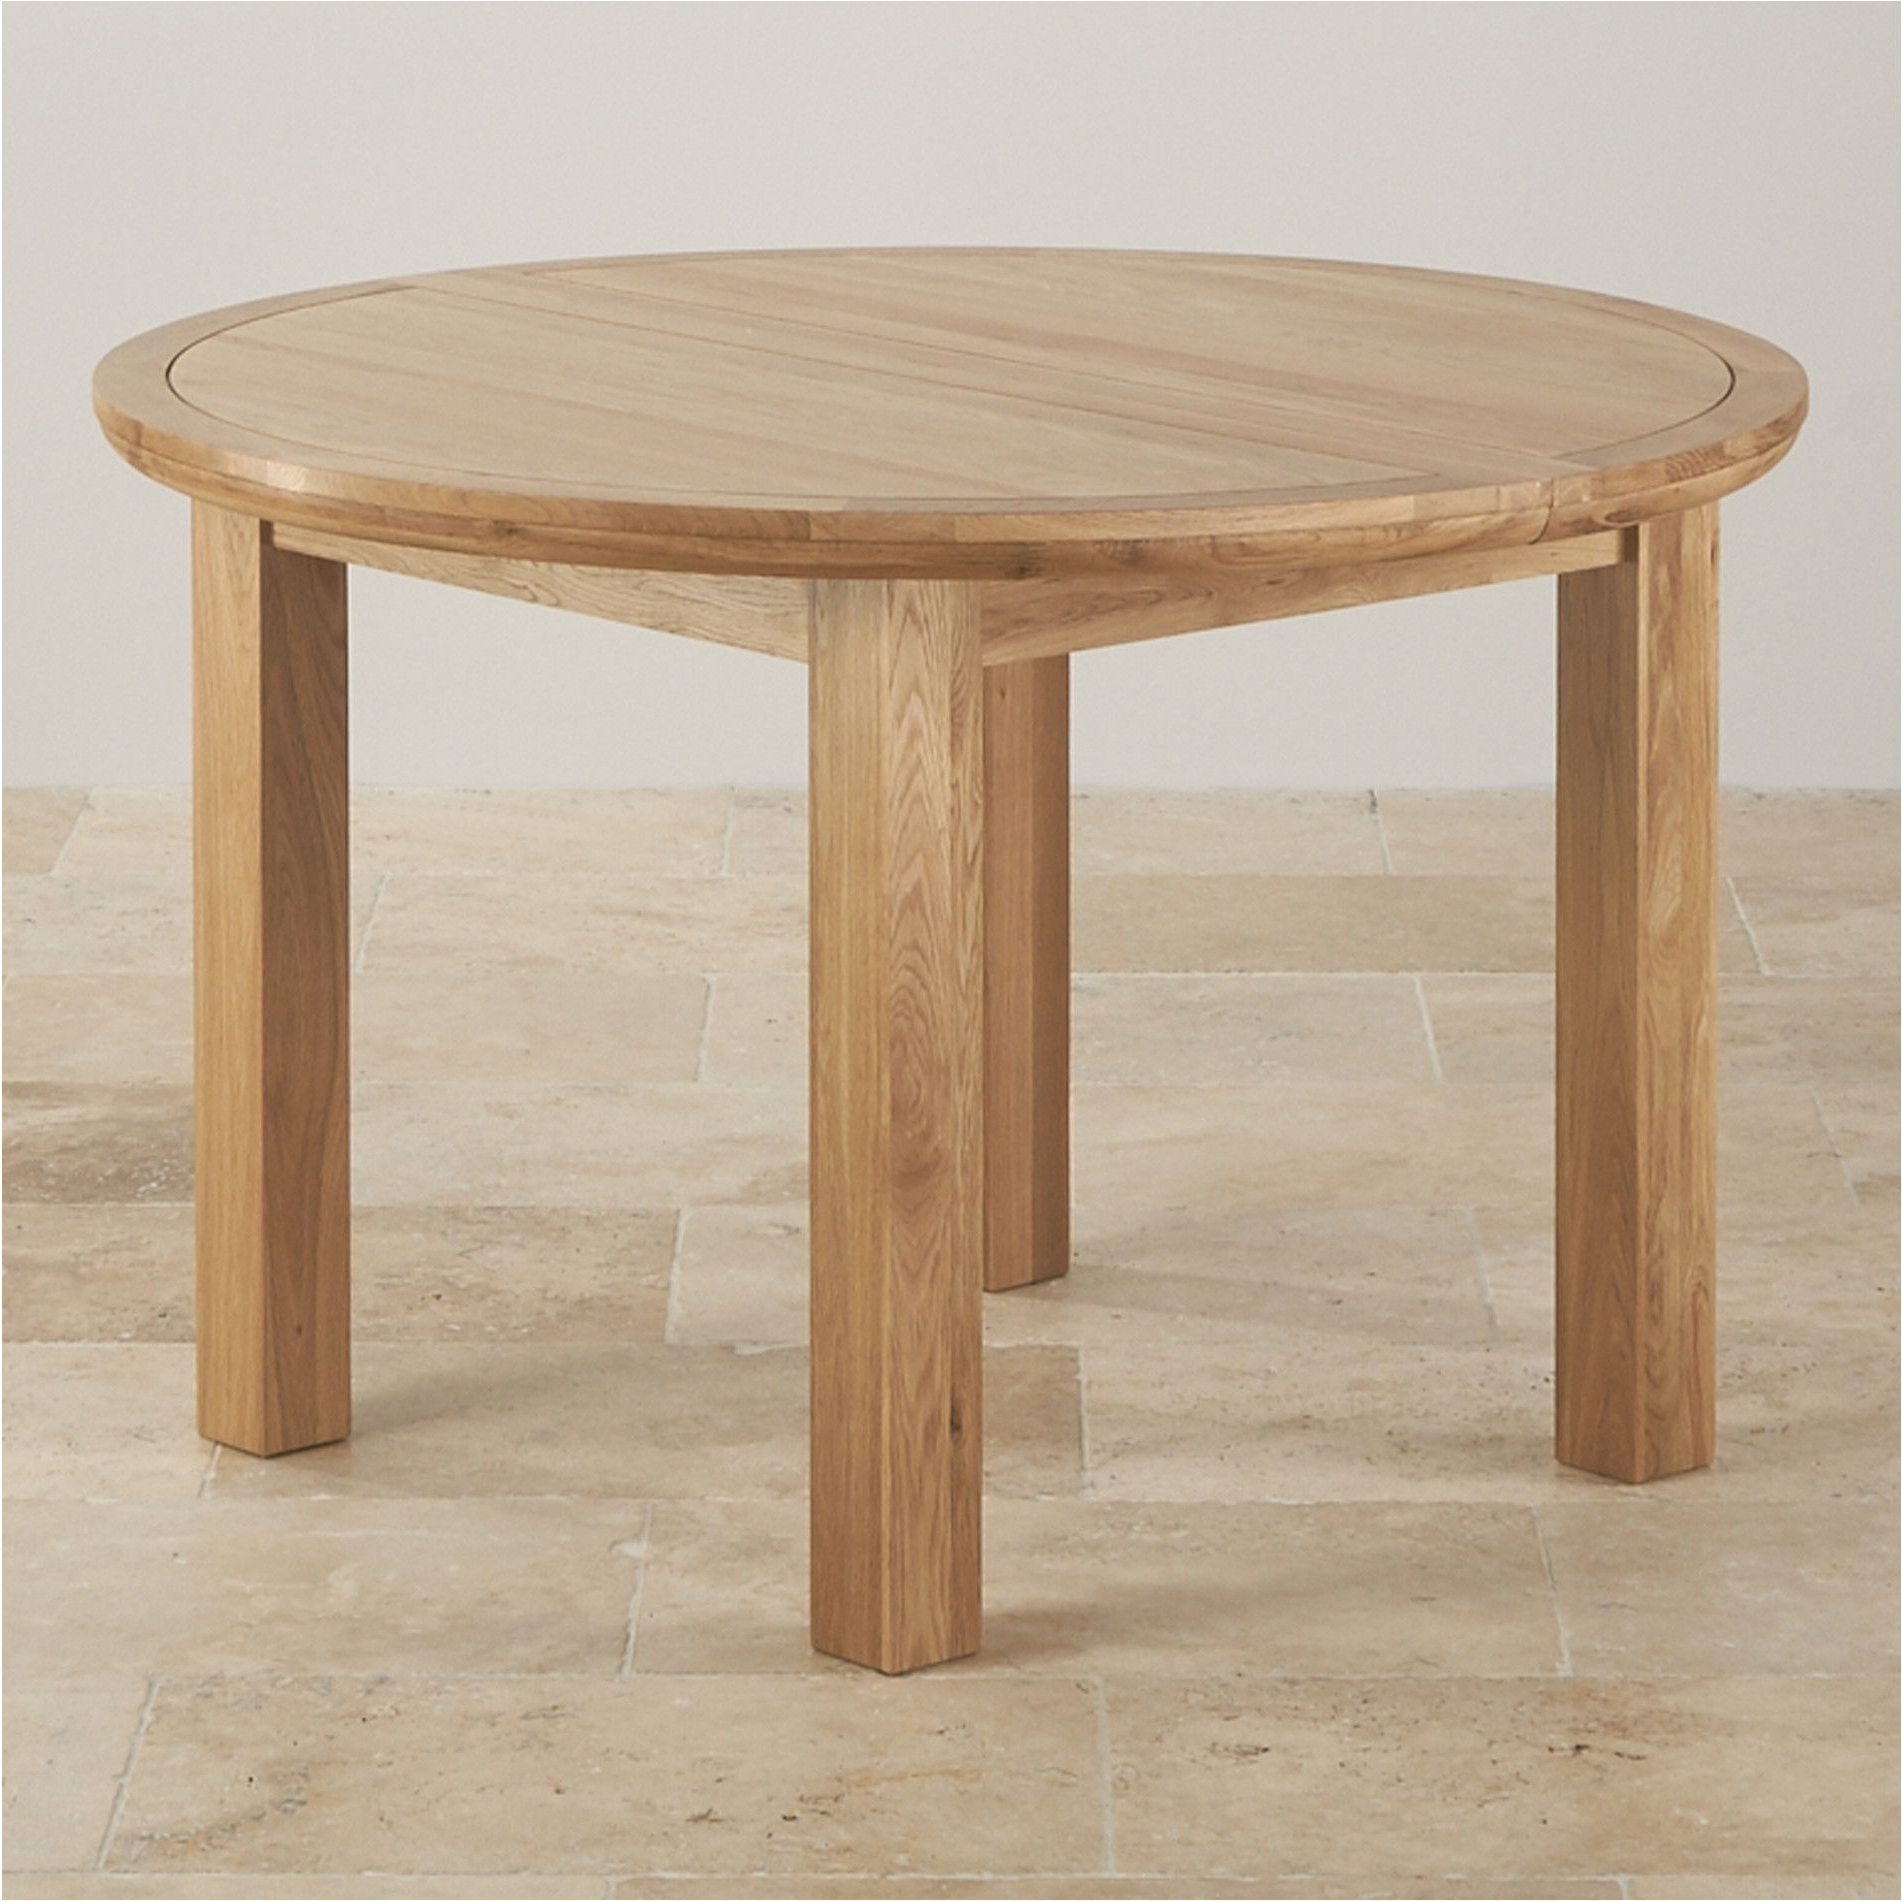 Newest Marvelous Stunning Round Oak Dining Tables Pertaining To House With Oak Dining Tables (Gallery 14 of 25)